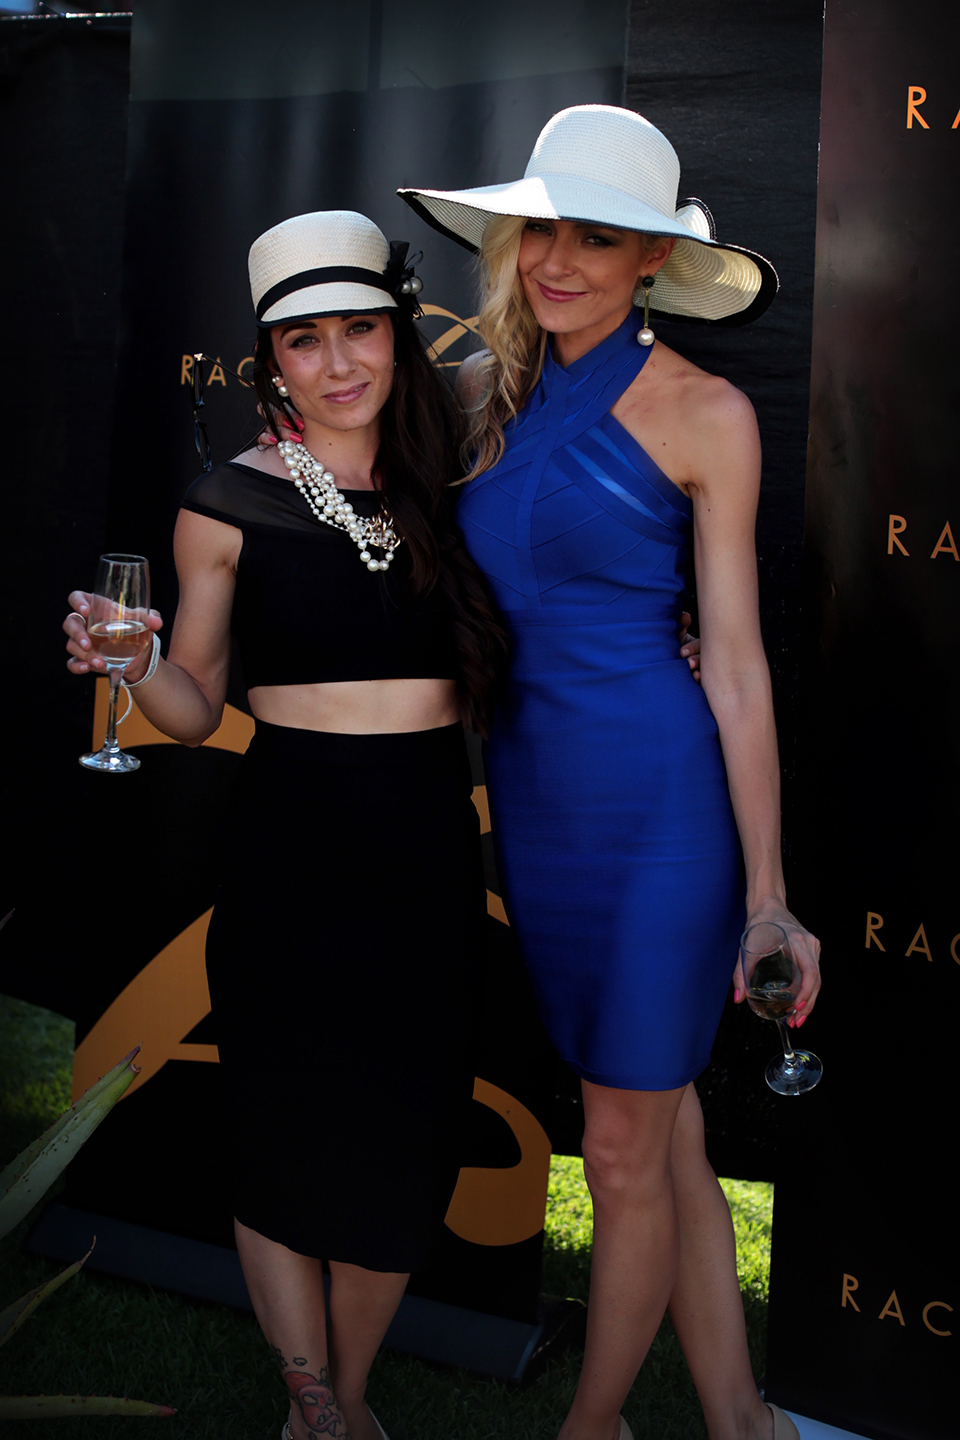 sansui-summer-cup-horseracing-southafrica-blogger-lifestyle-blogger-07.jpg